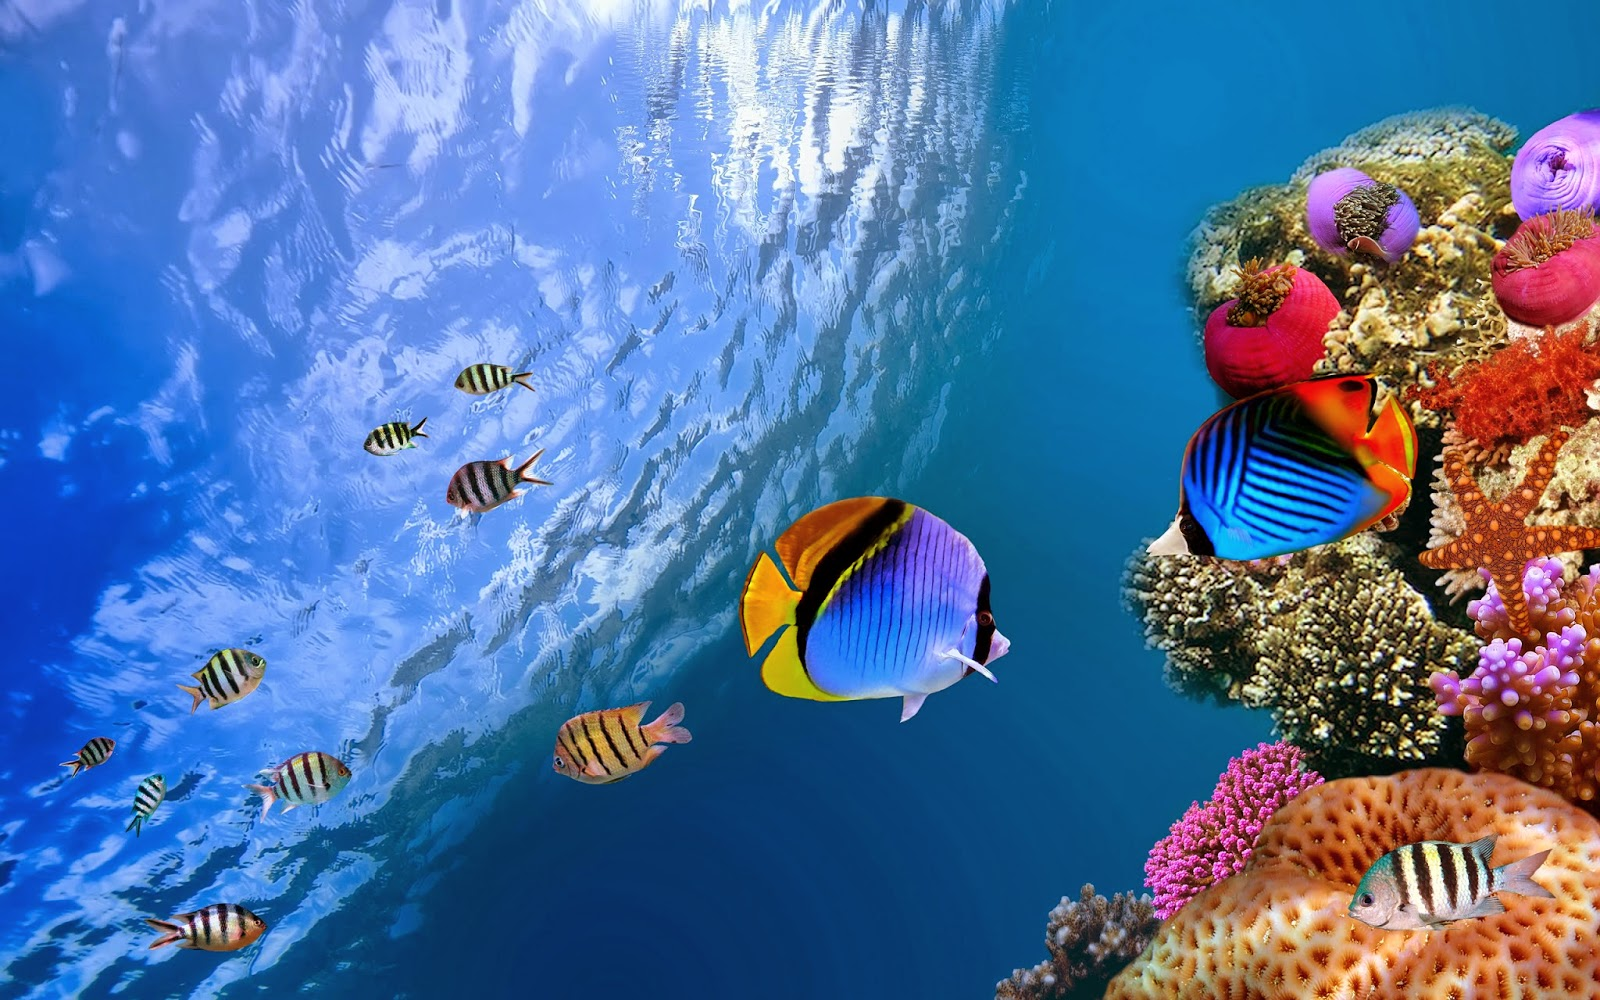 Fish-best-photo-of-undersea-creatures-HD-collection.jpg